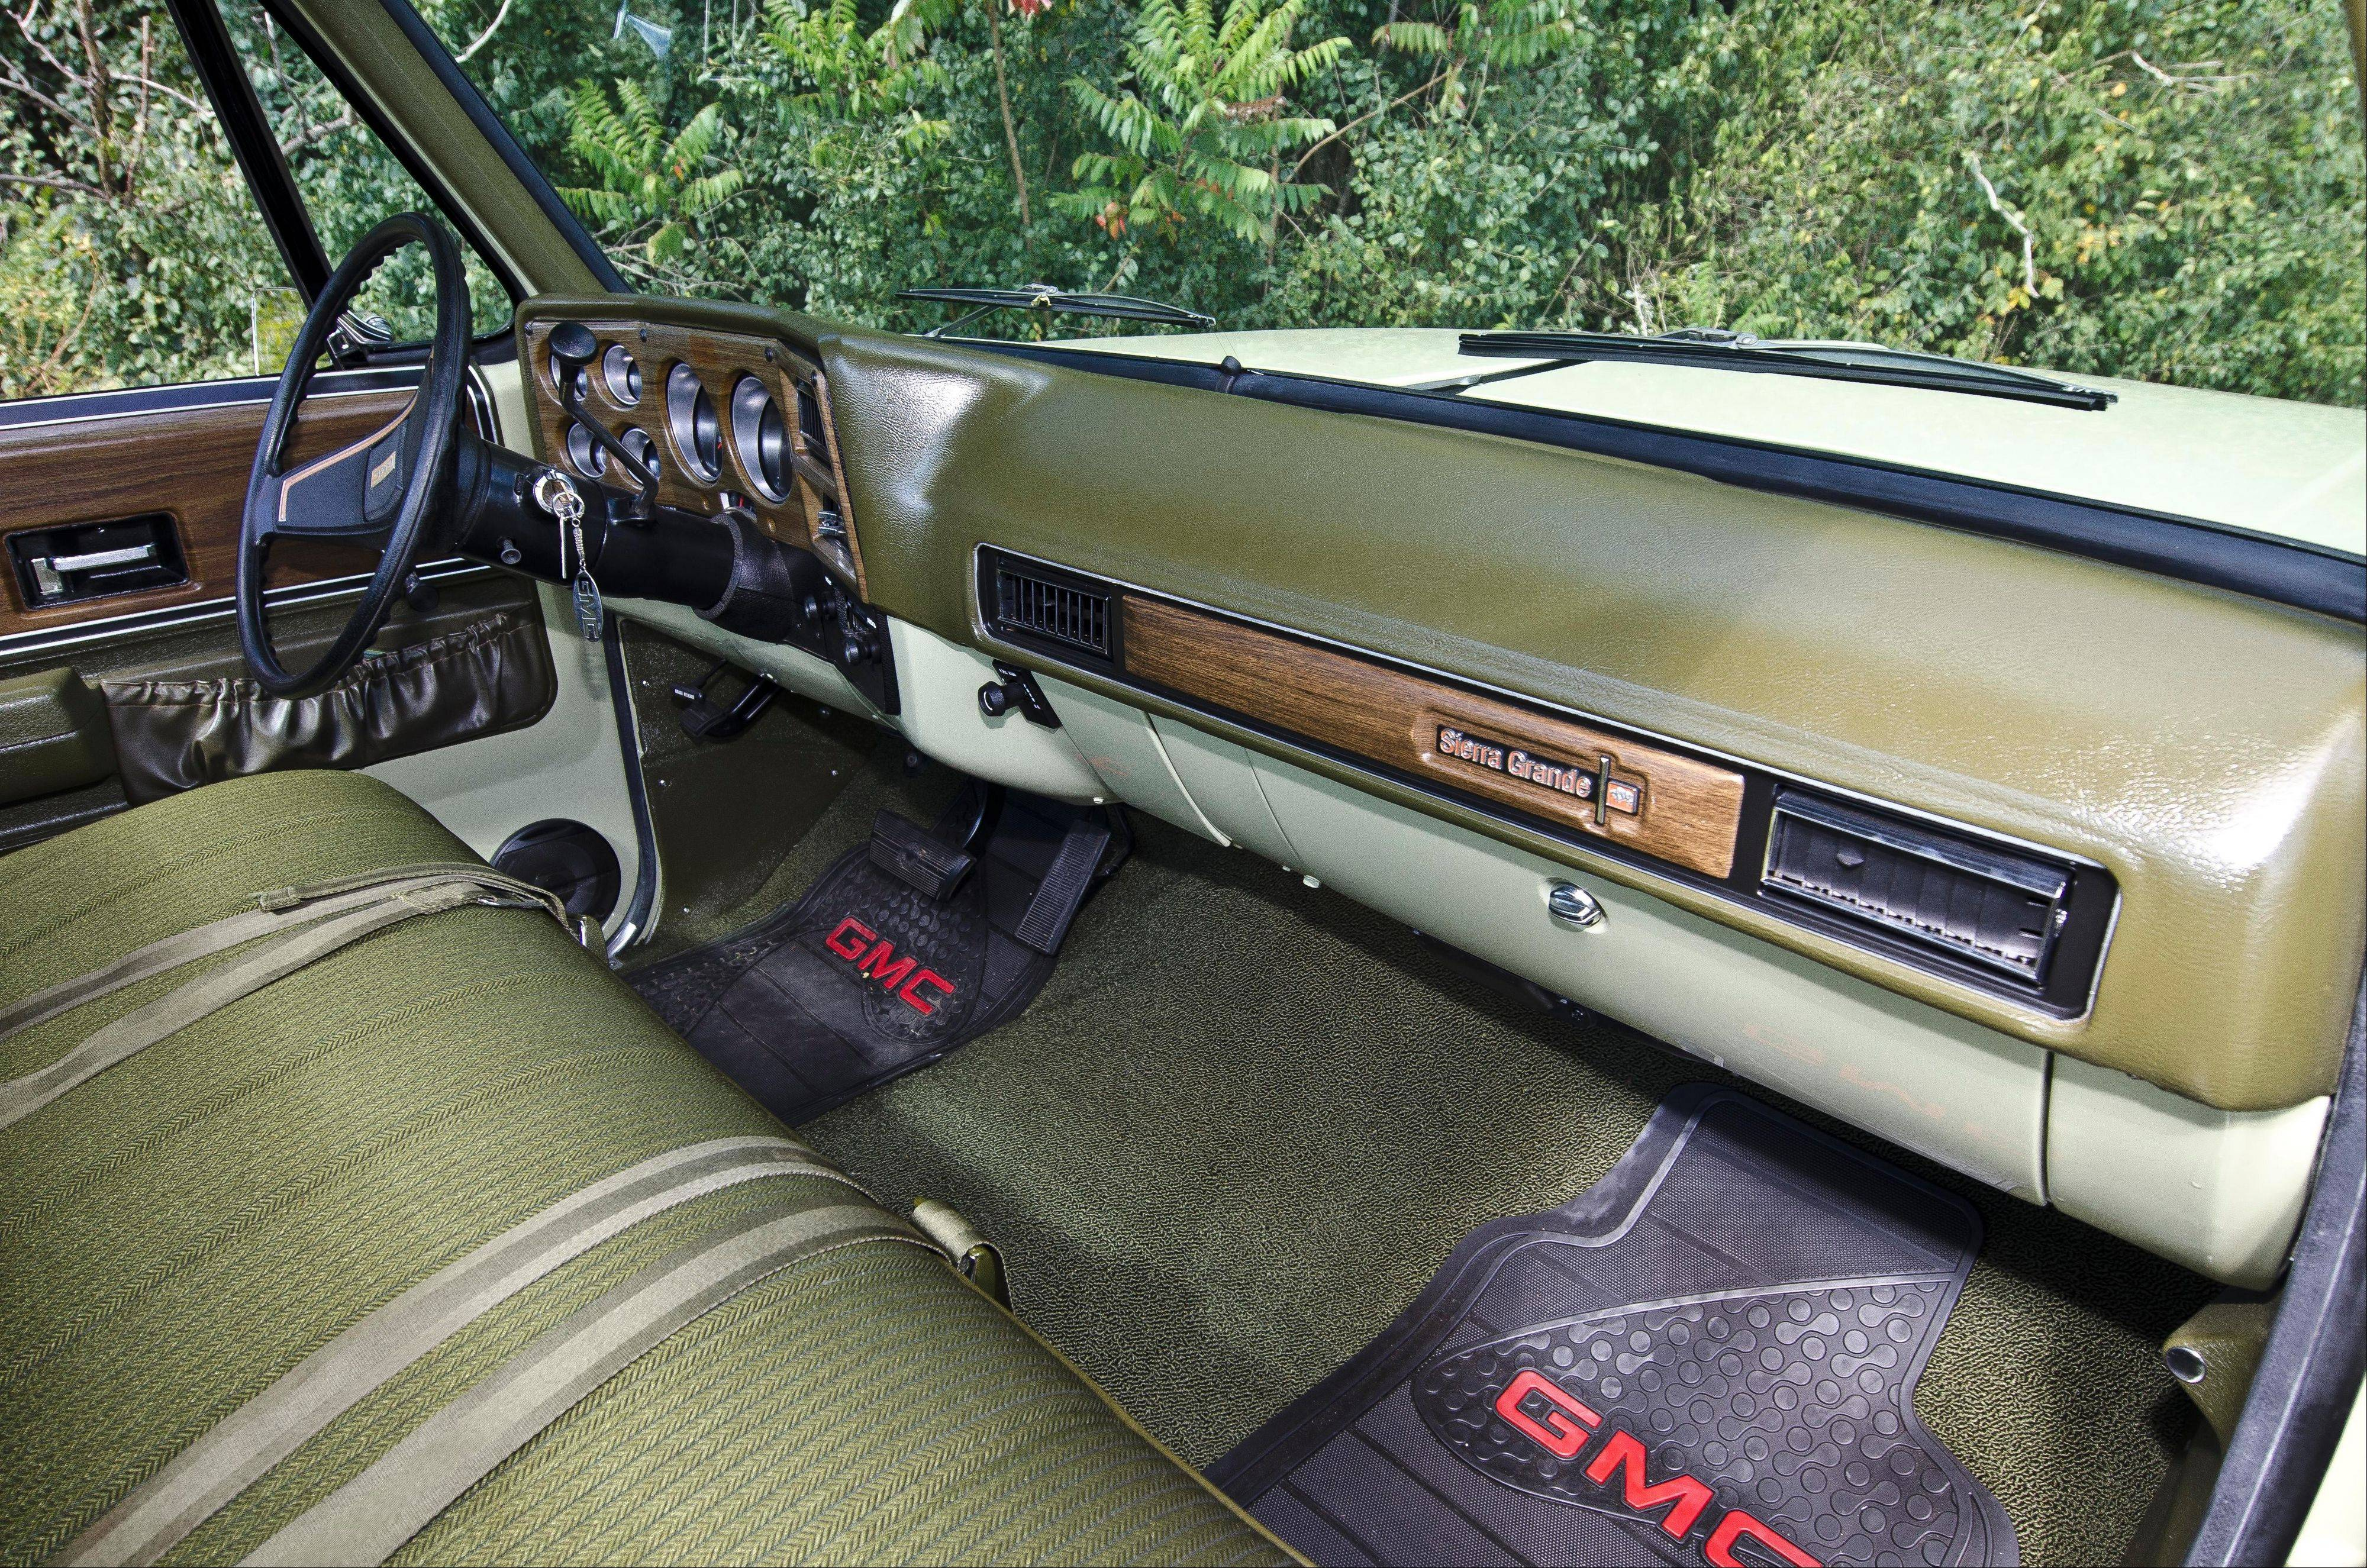 The interior has been reupholstered in original Avocado Green fabric.